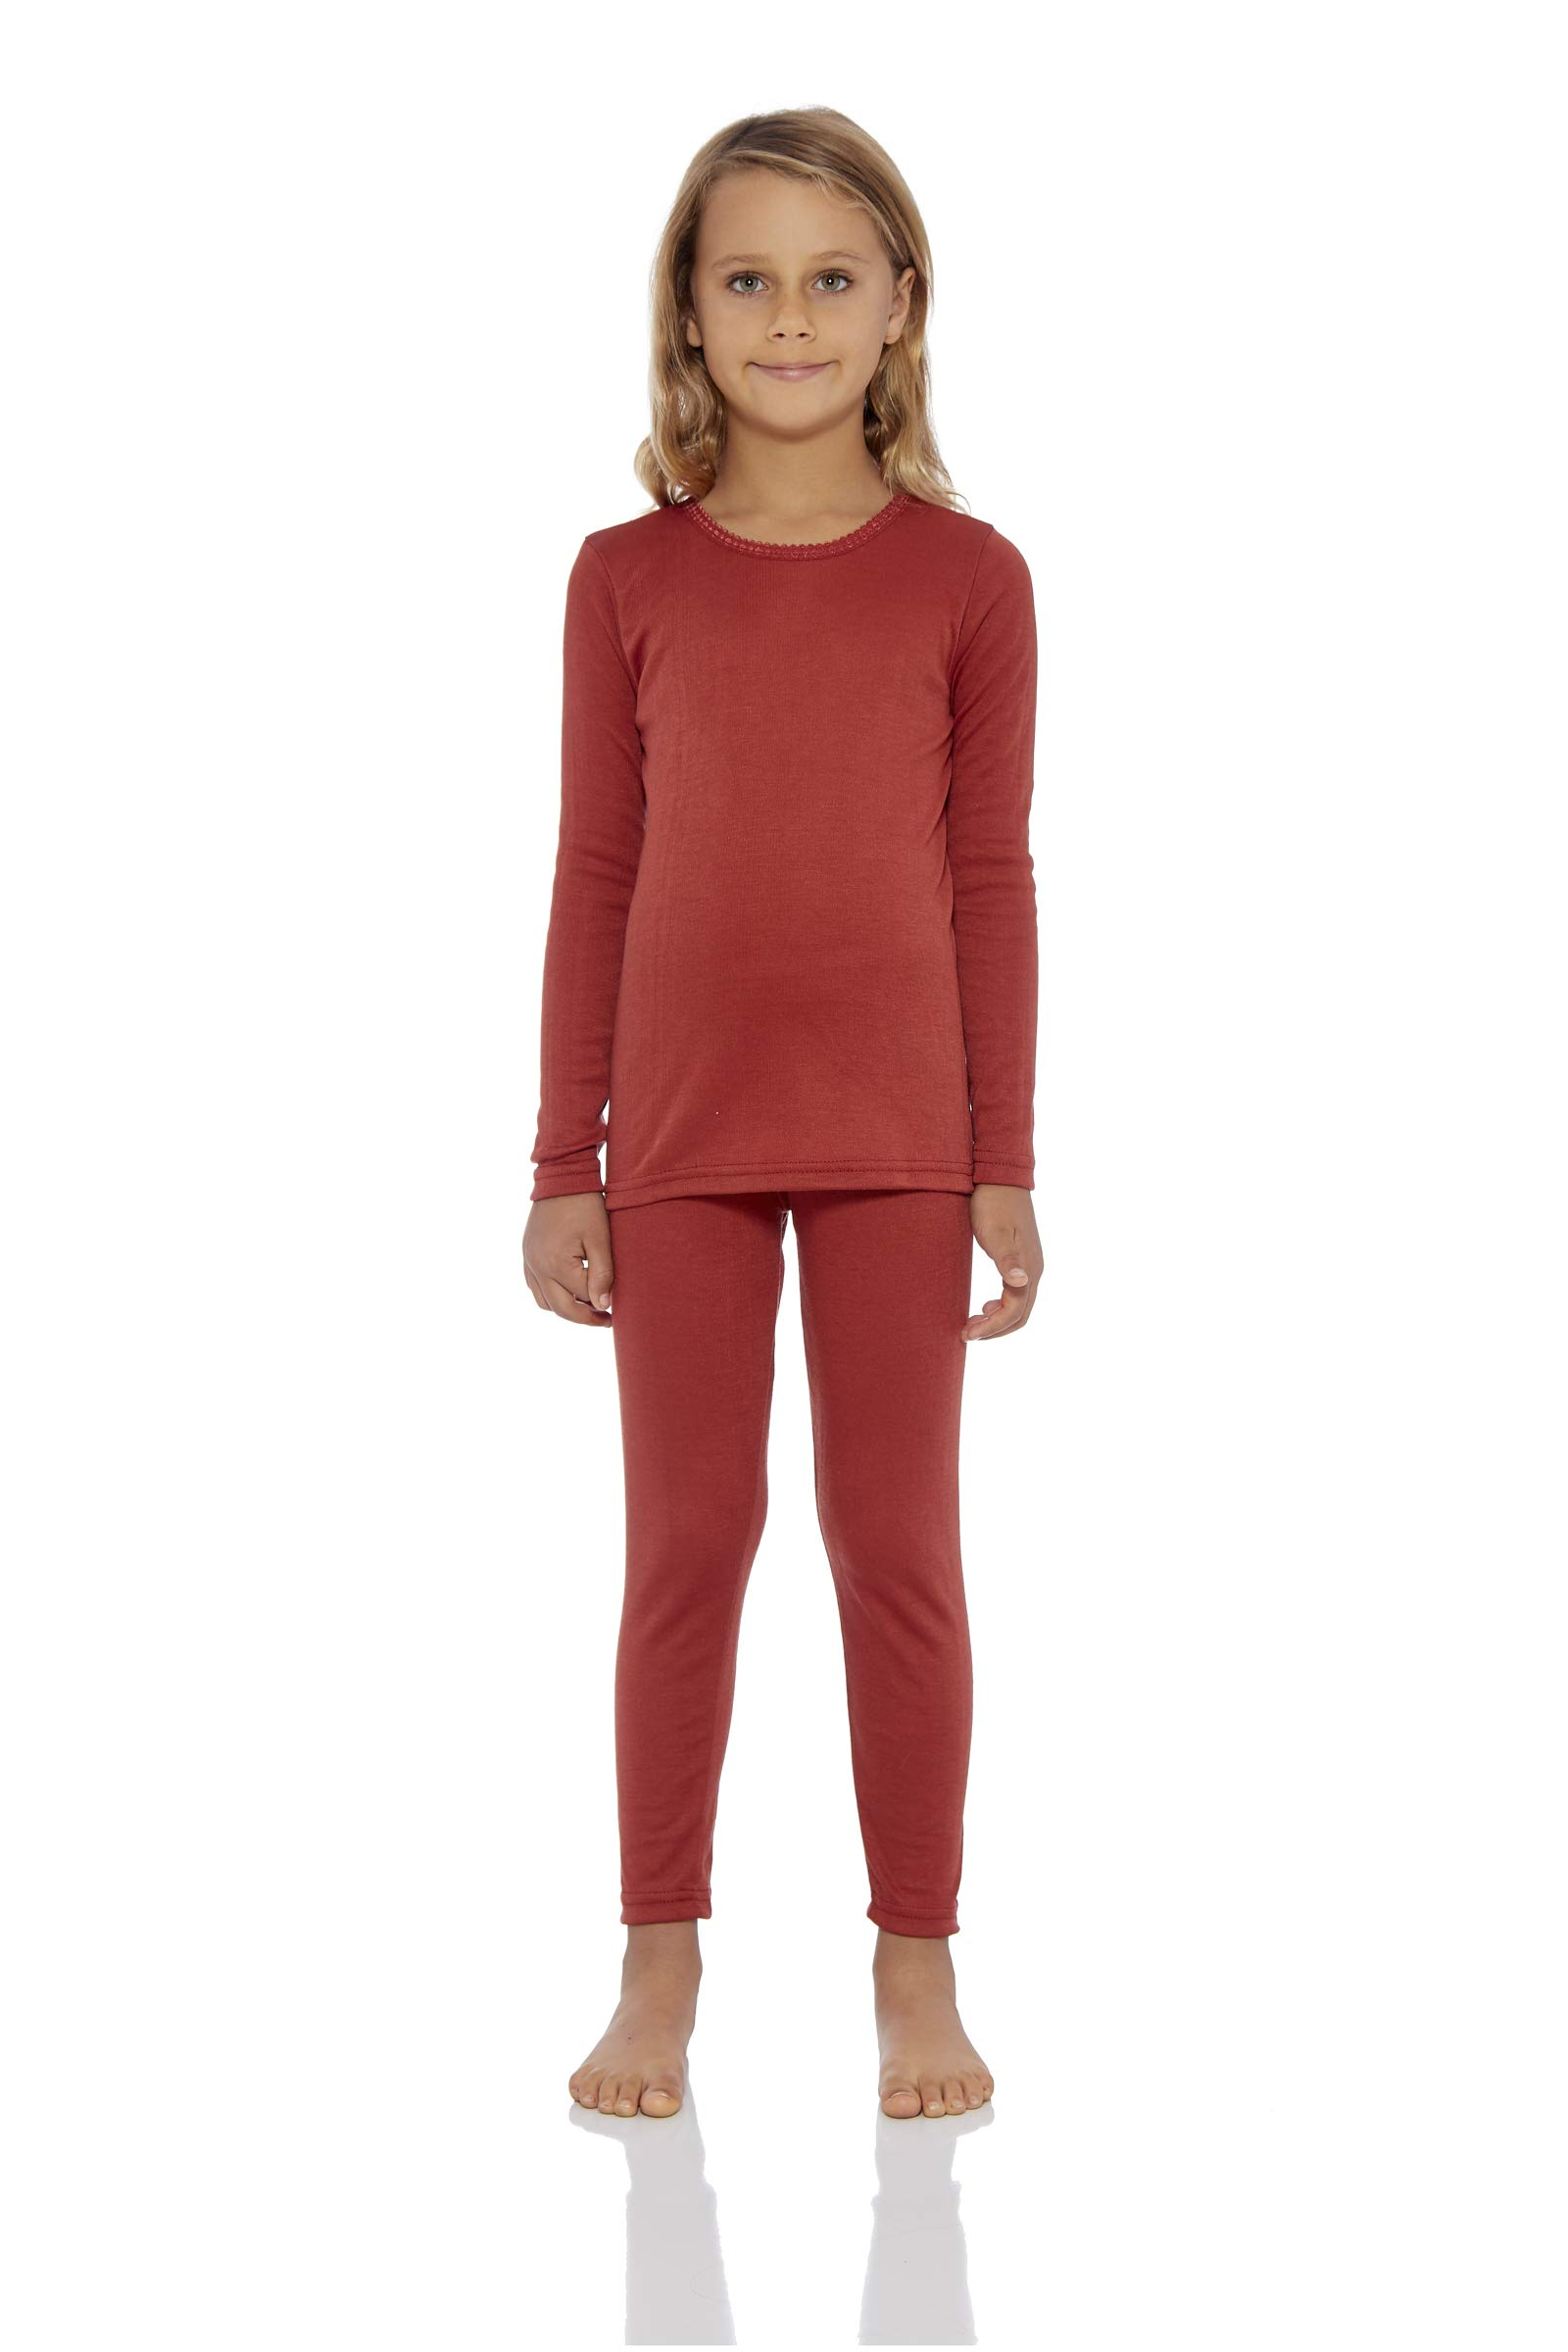 Rocky Girl's Smooth Knit Thermal Underwear 2PC Set Long John Top and Bottom Pajamas (Rust, L) by Rocky